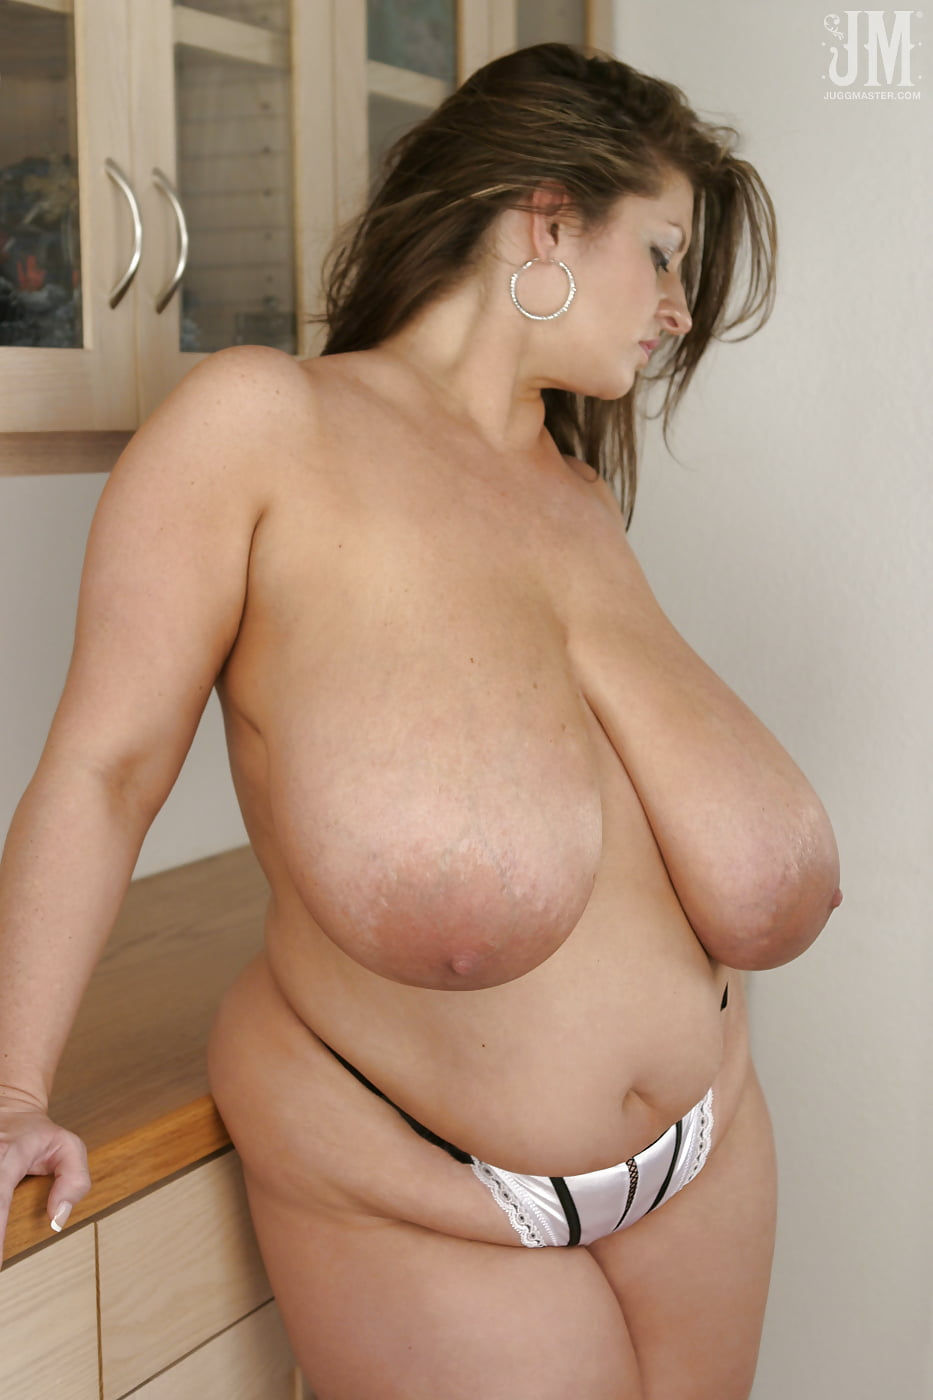 Nude pics Pee desperate holding position